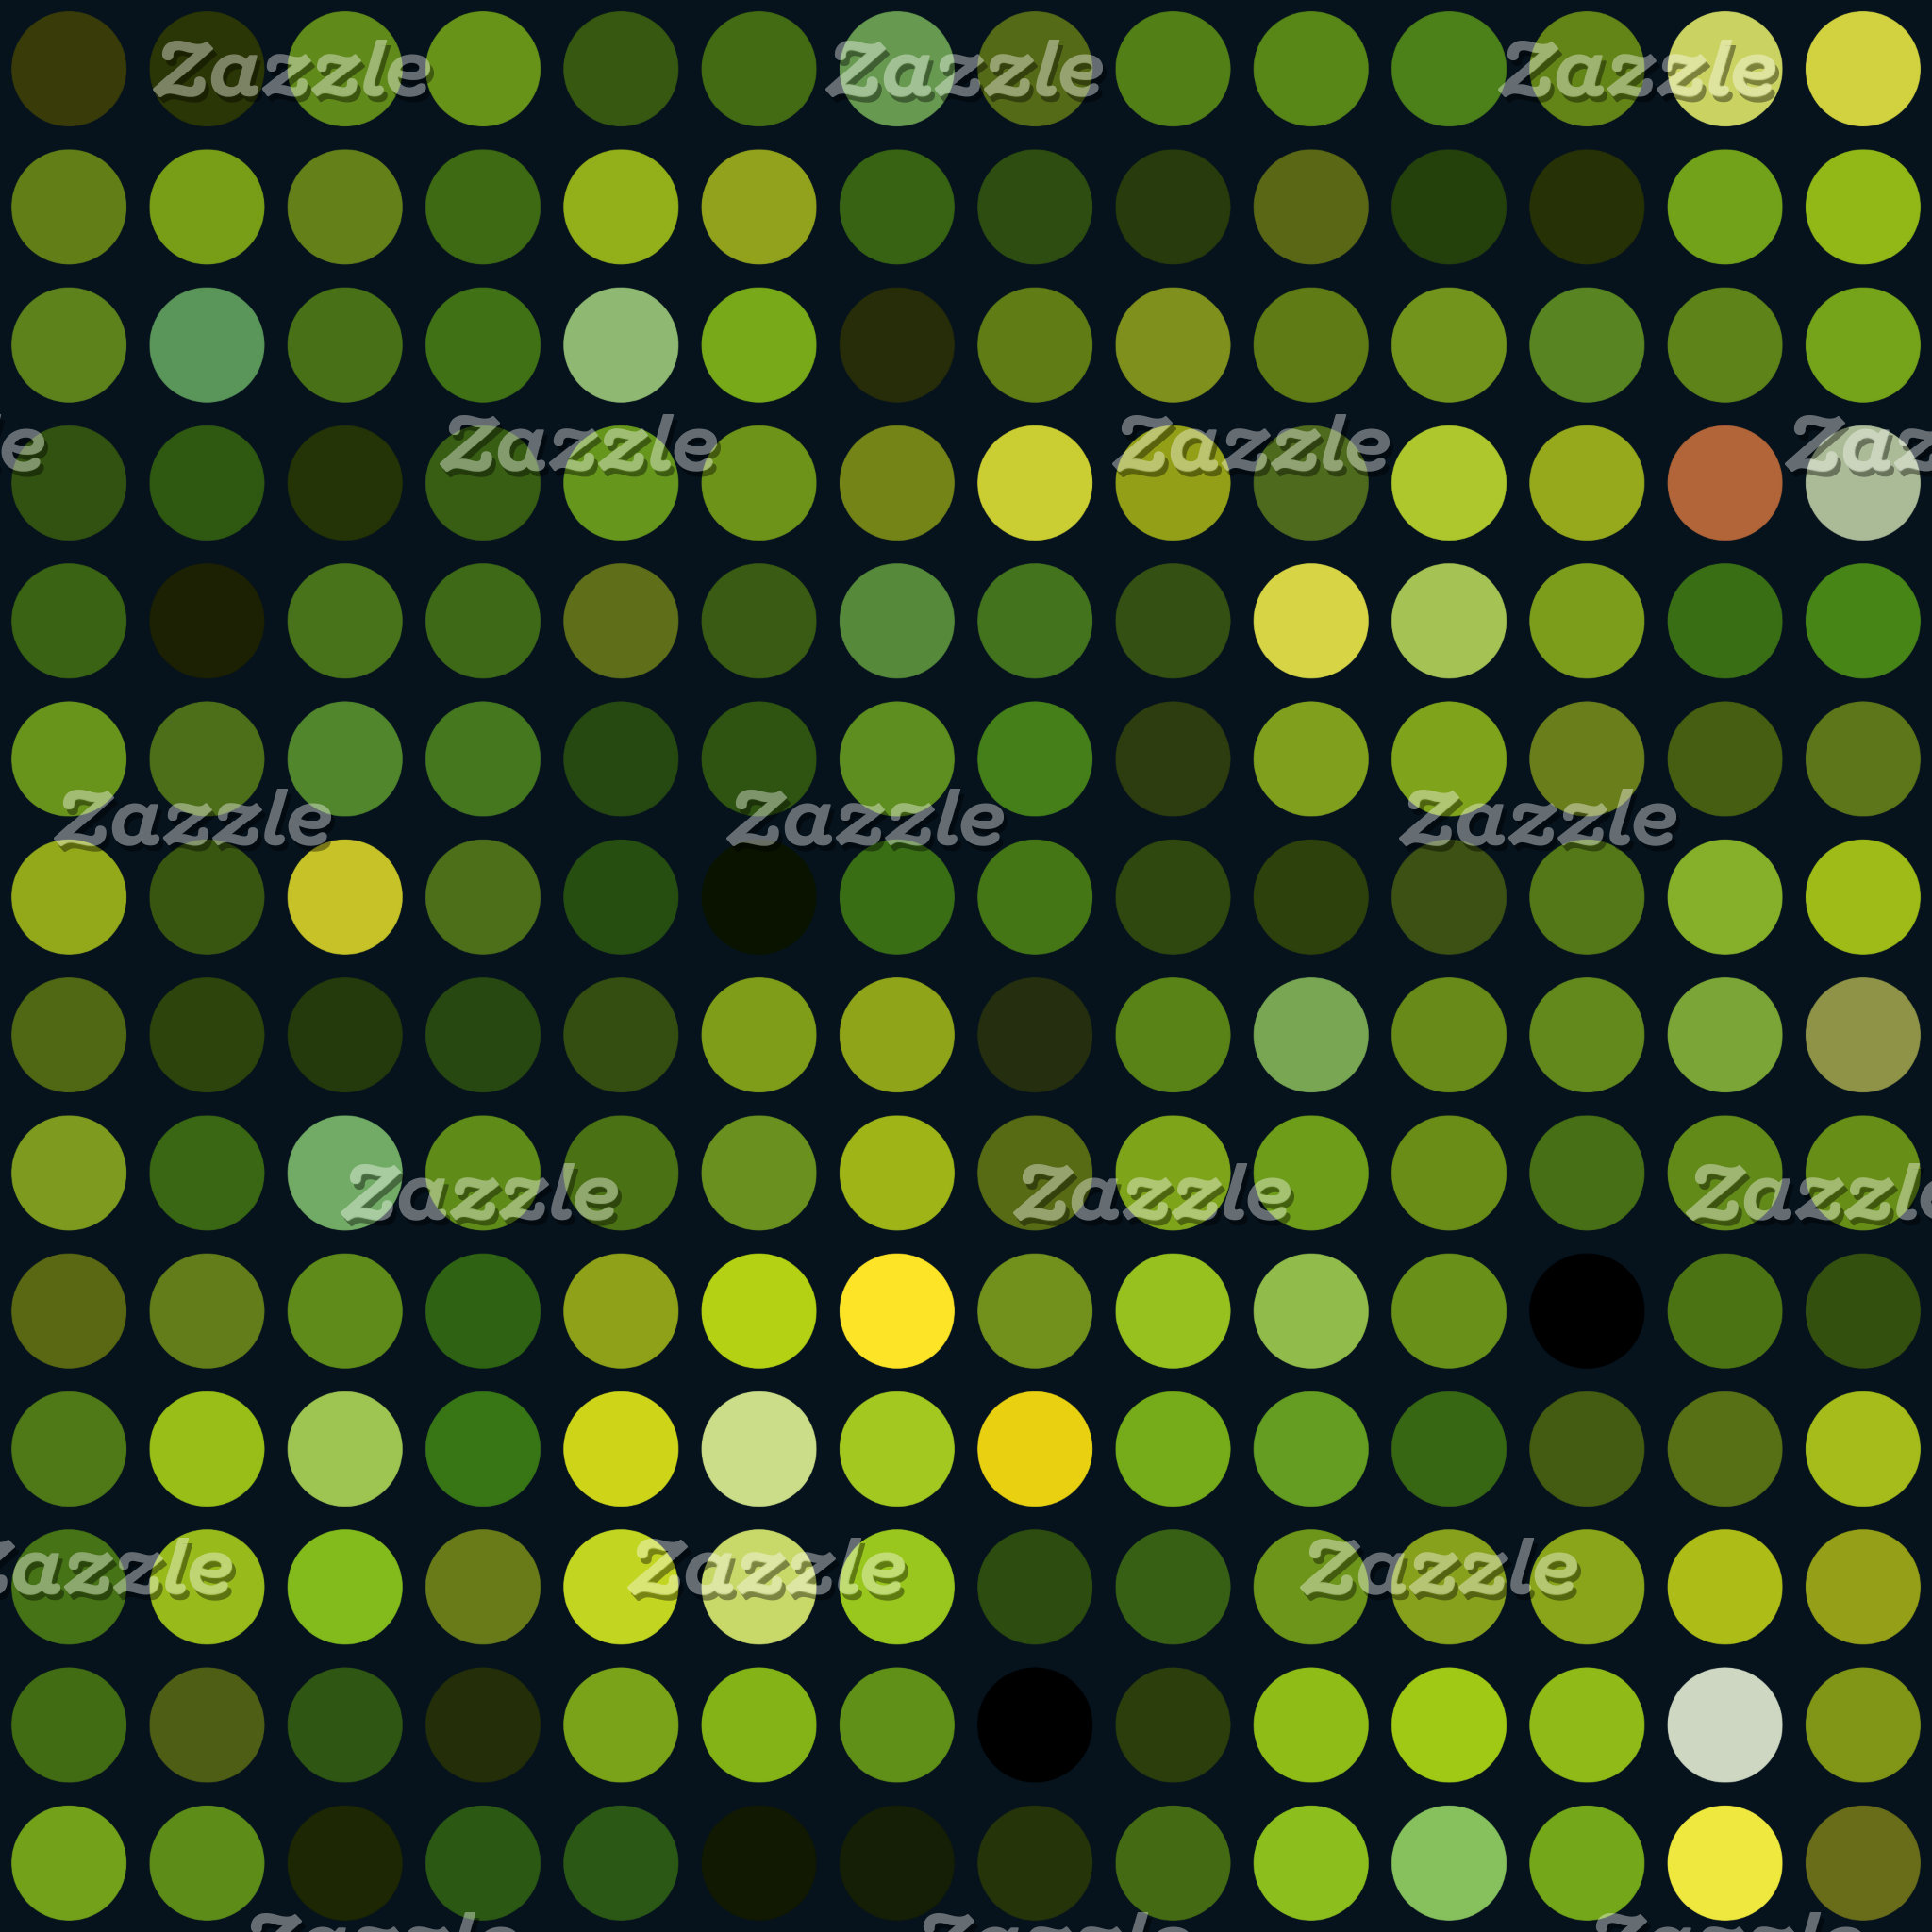 Geometric Patterns | Green Circles